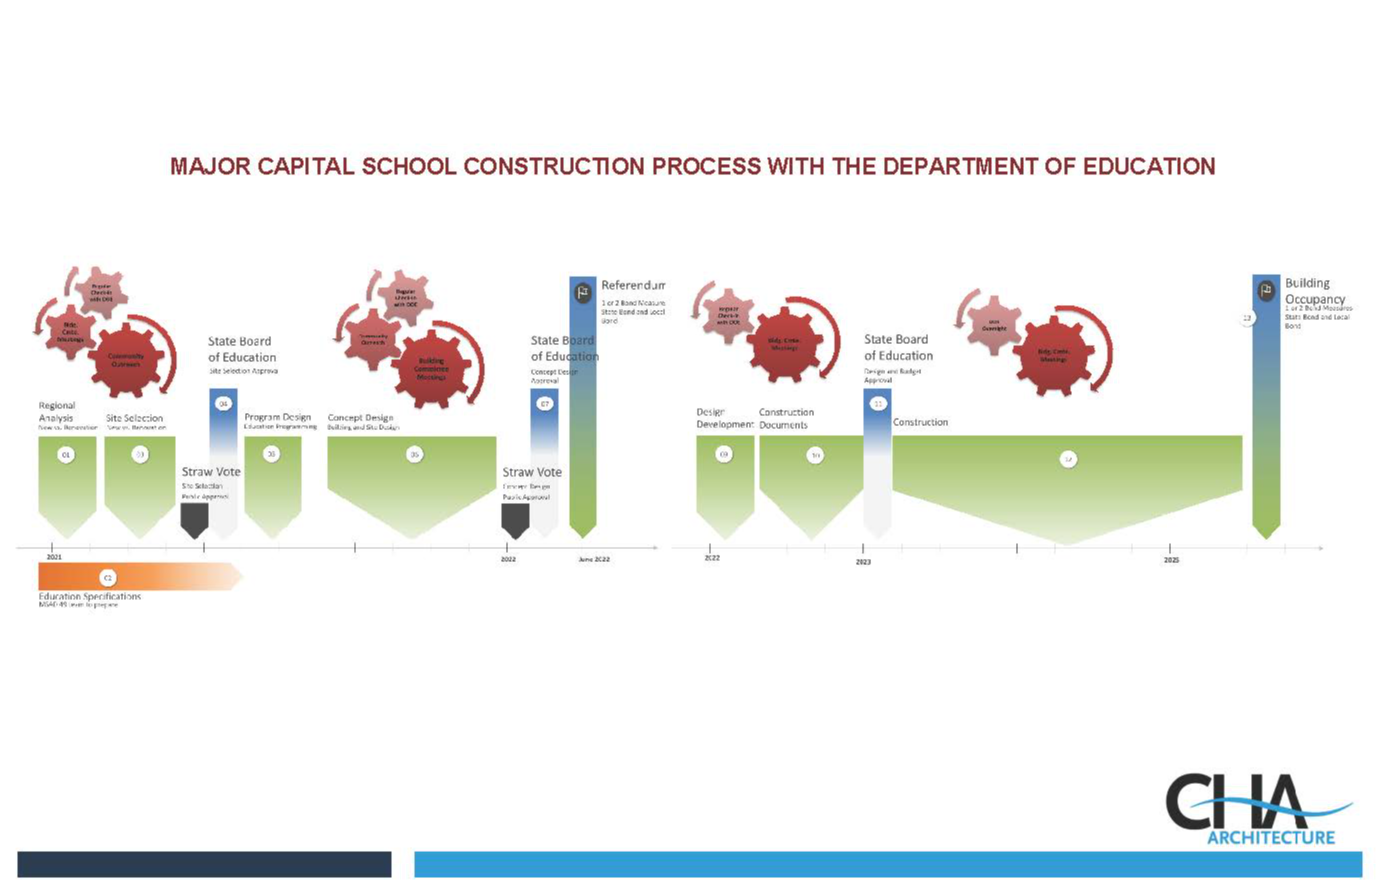 Major capital school construction process with the Department of Education